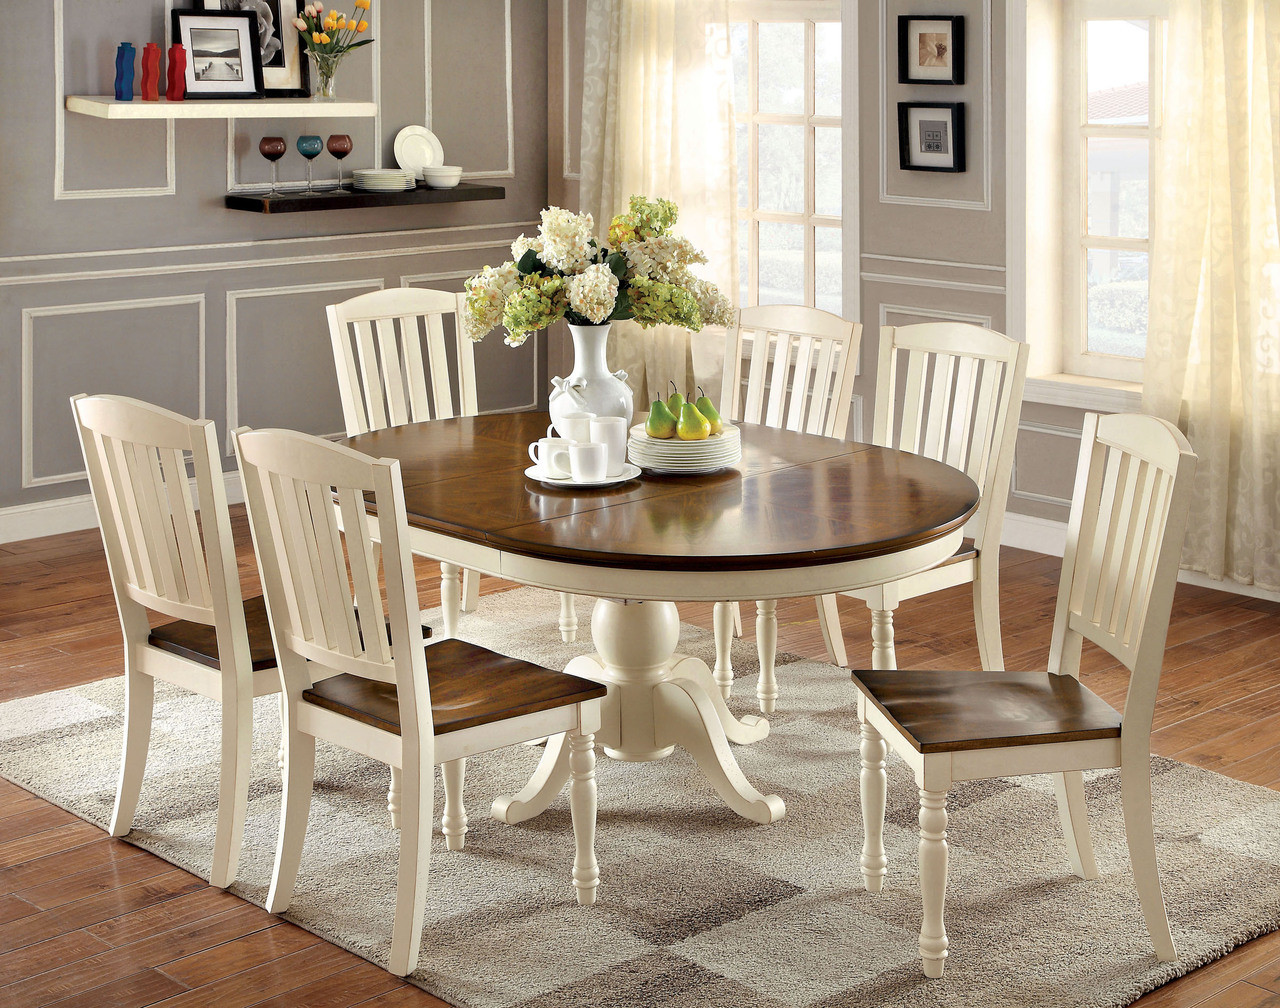 66 Sutton Oval Vintage White Cherry Dining Table Set